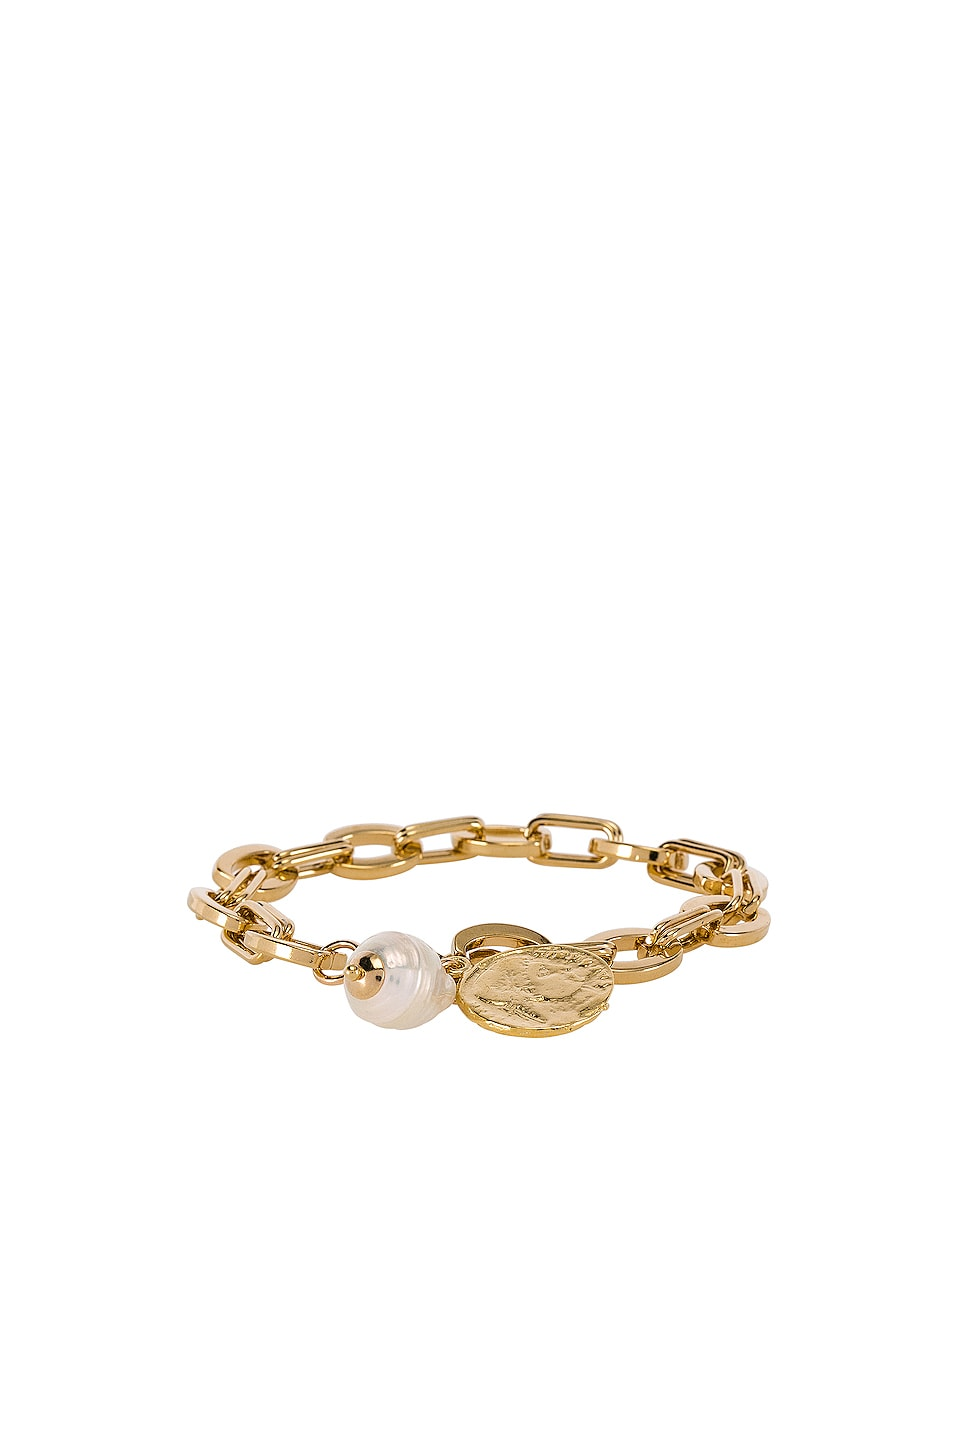 joolz by Martha Calvo The Delos Charm Bracelet in Gold